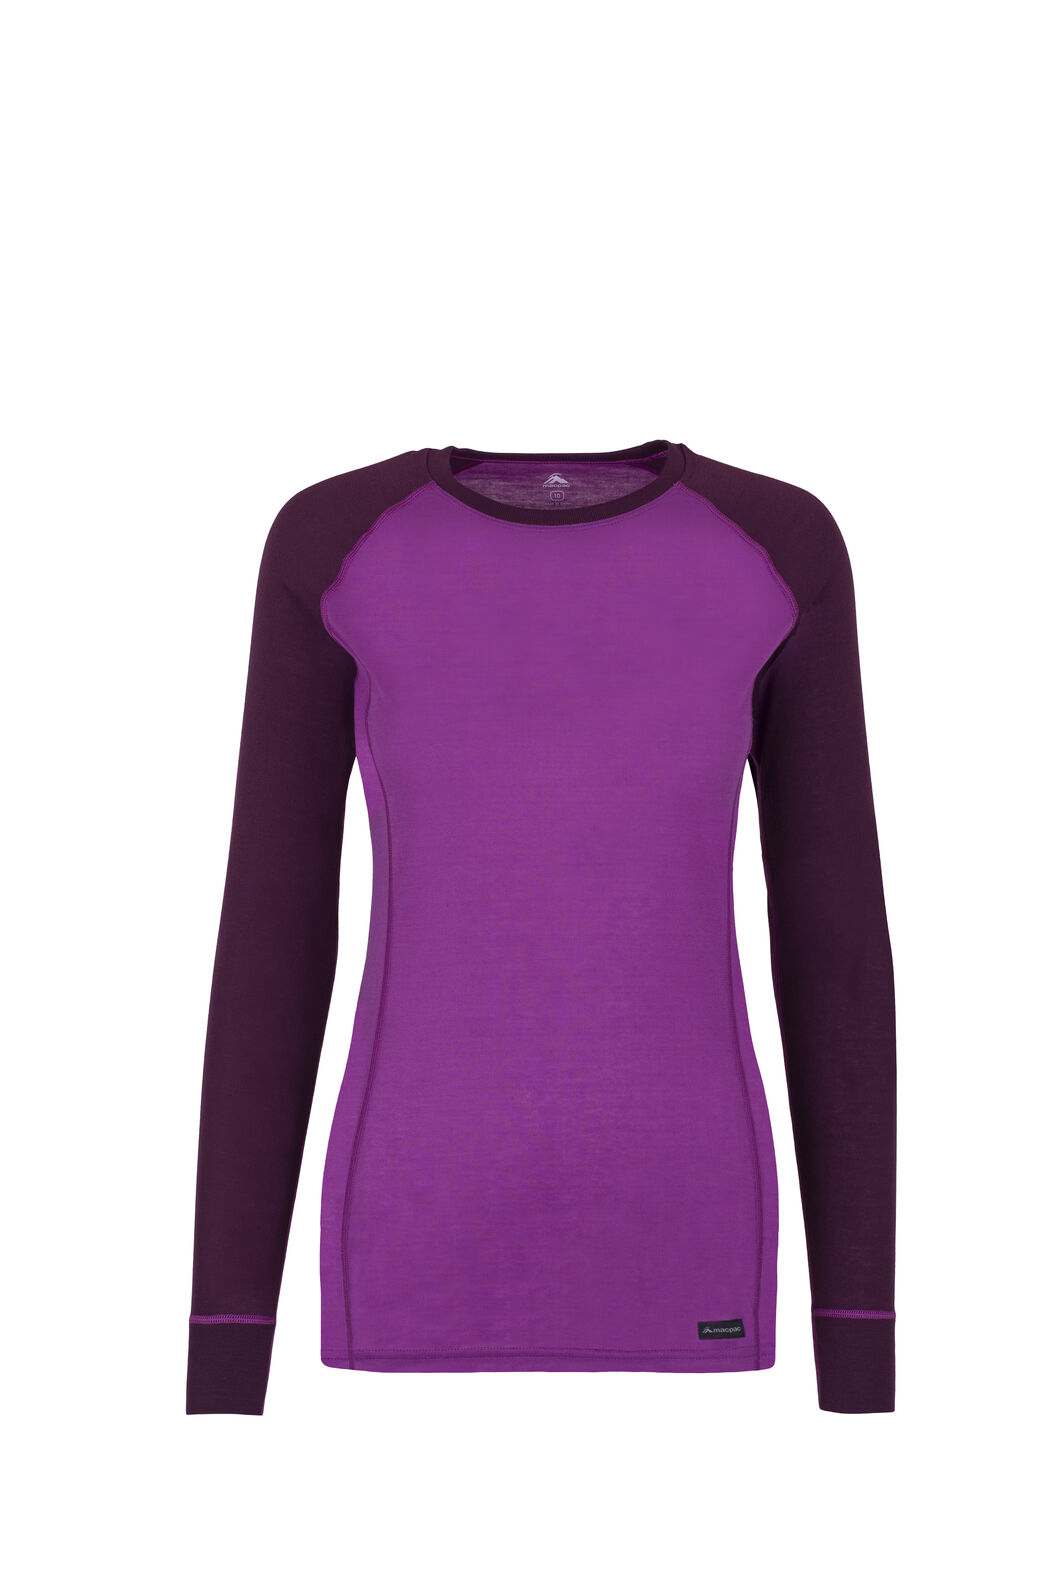 Macpac Geothermal Long Sleeve Top - Women's, Dahlia/Potent Purple, hi-res